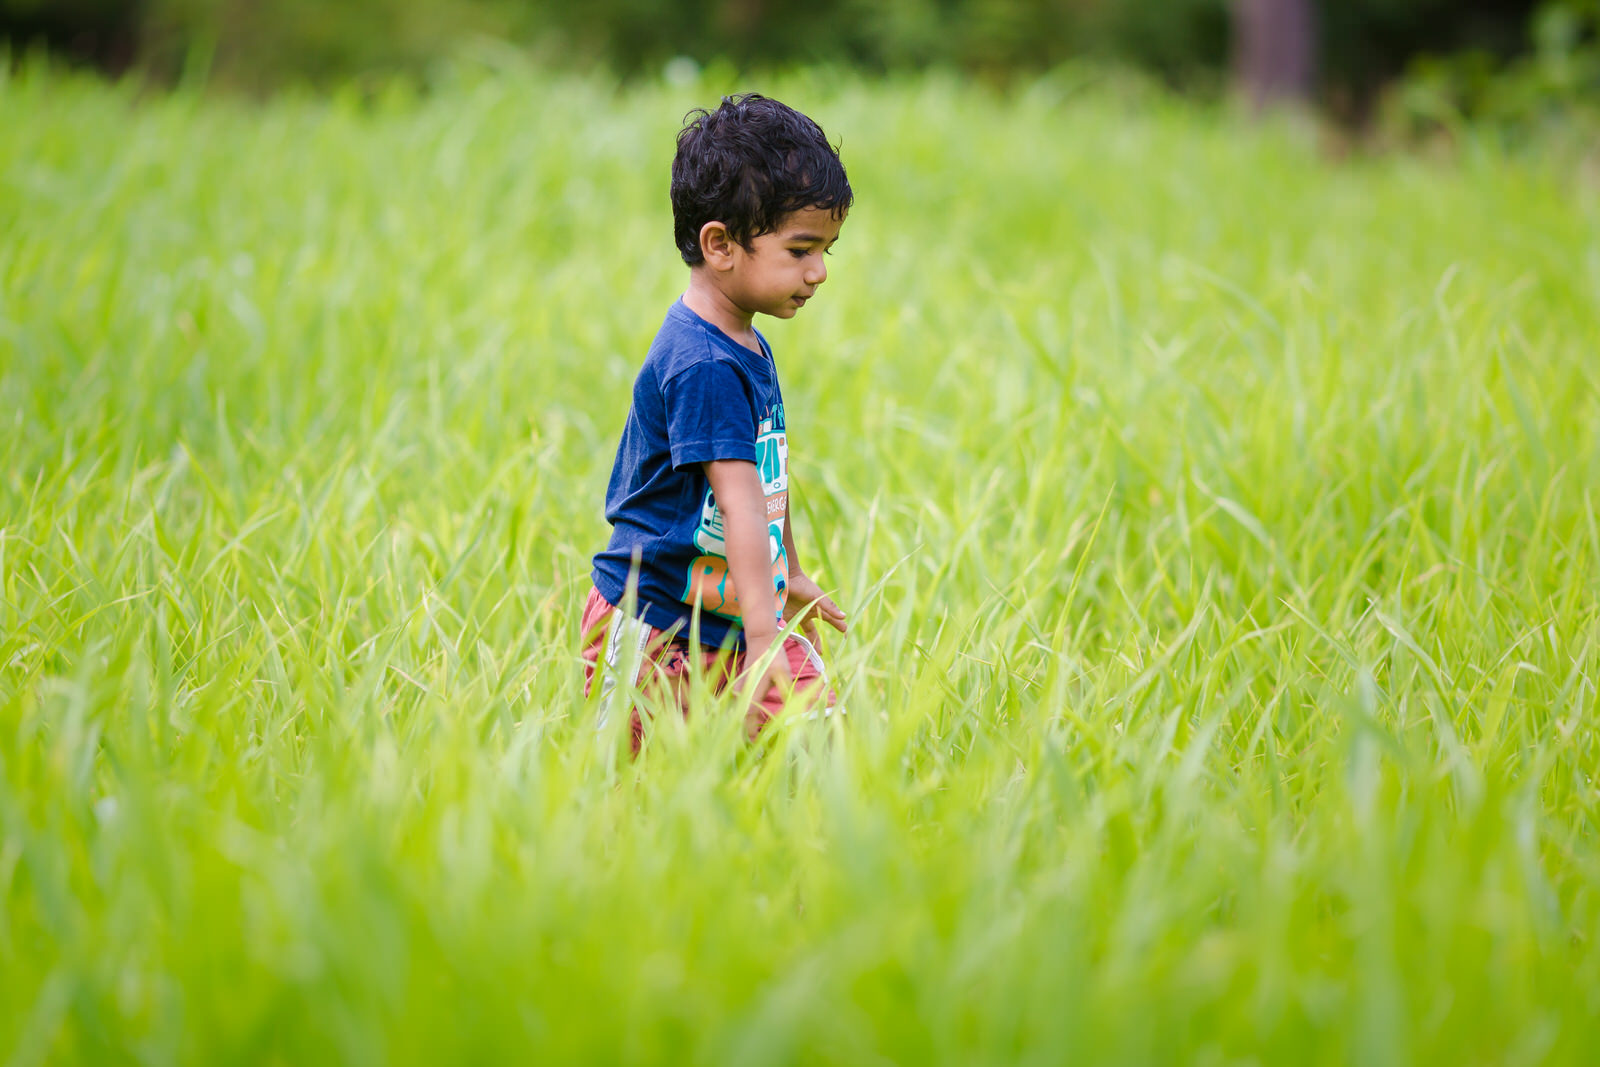 10072015-Sahas-Playing-Middle-Fields-029.jpg